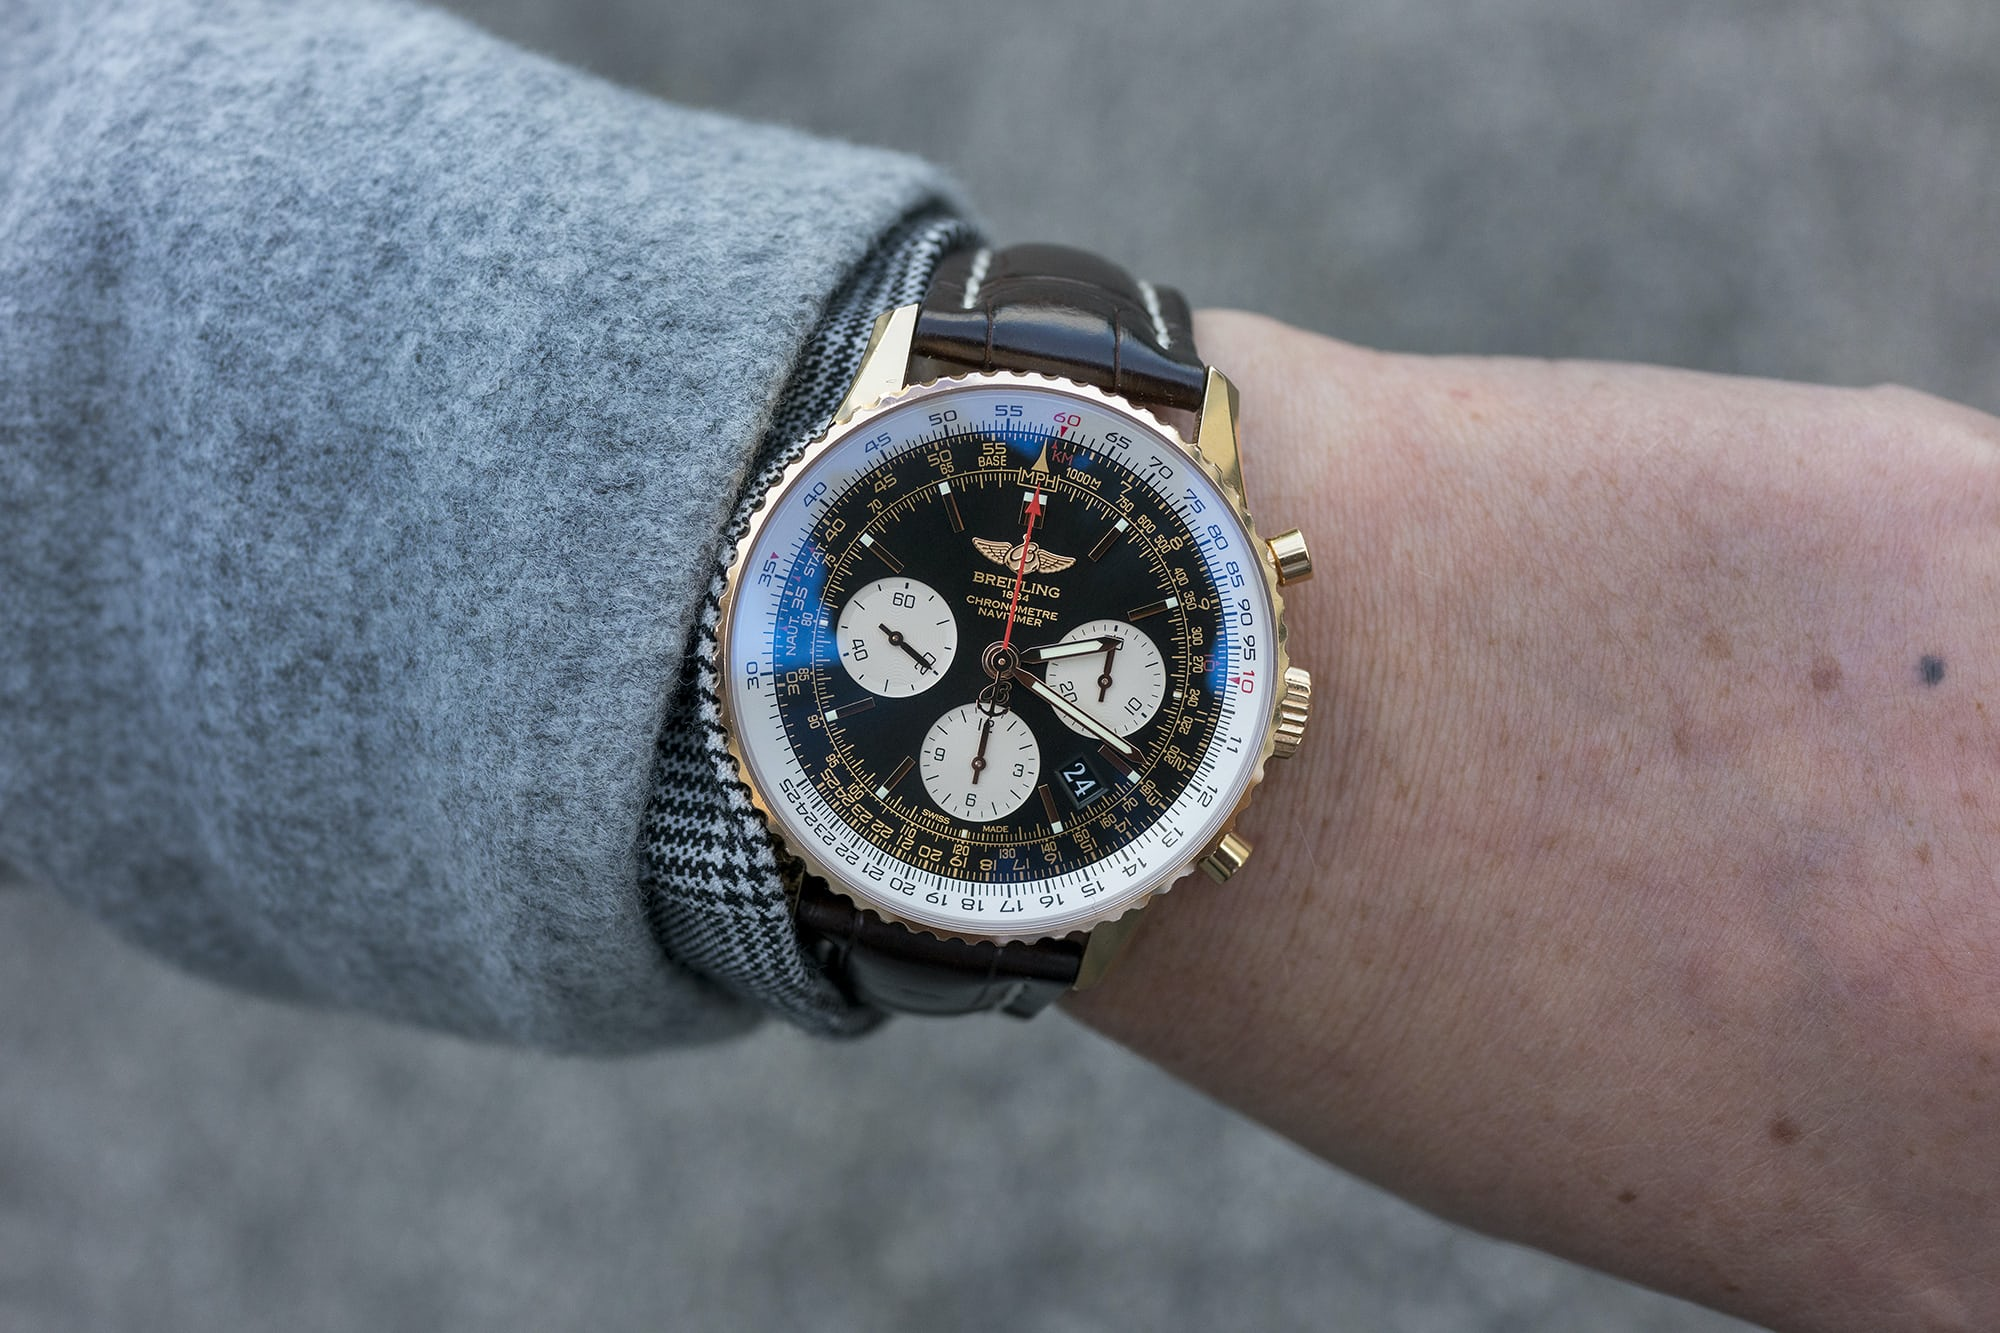 Photo Report: The Fashion And Watches Of Baselworld 2018 Photo Report: The Fashion And Watches Of Baselworld 2018 DSC00880 copy